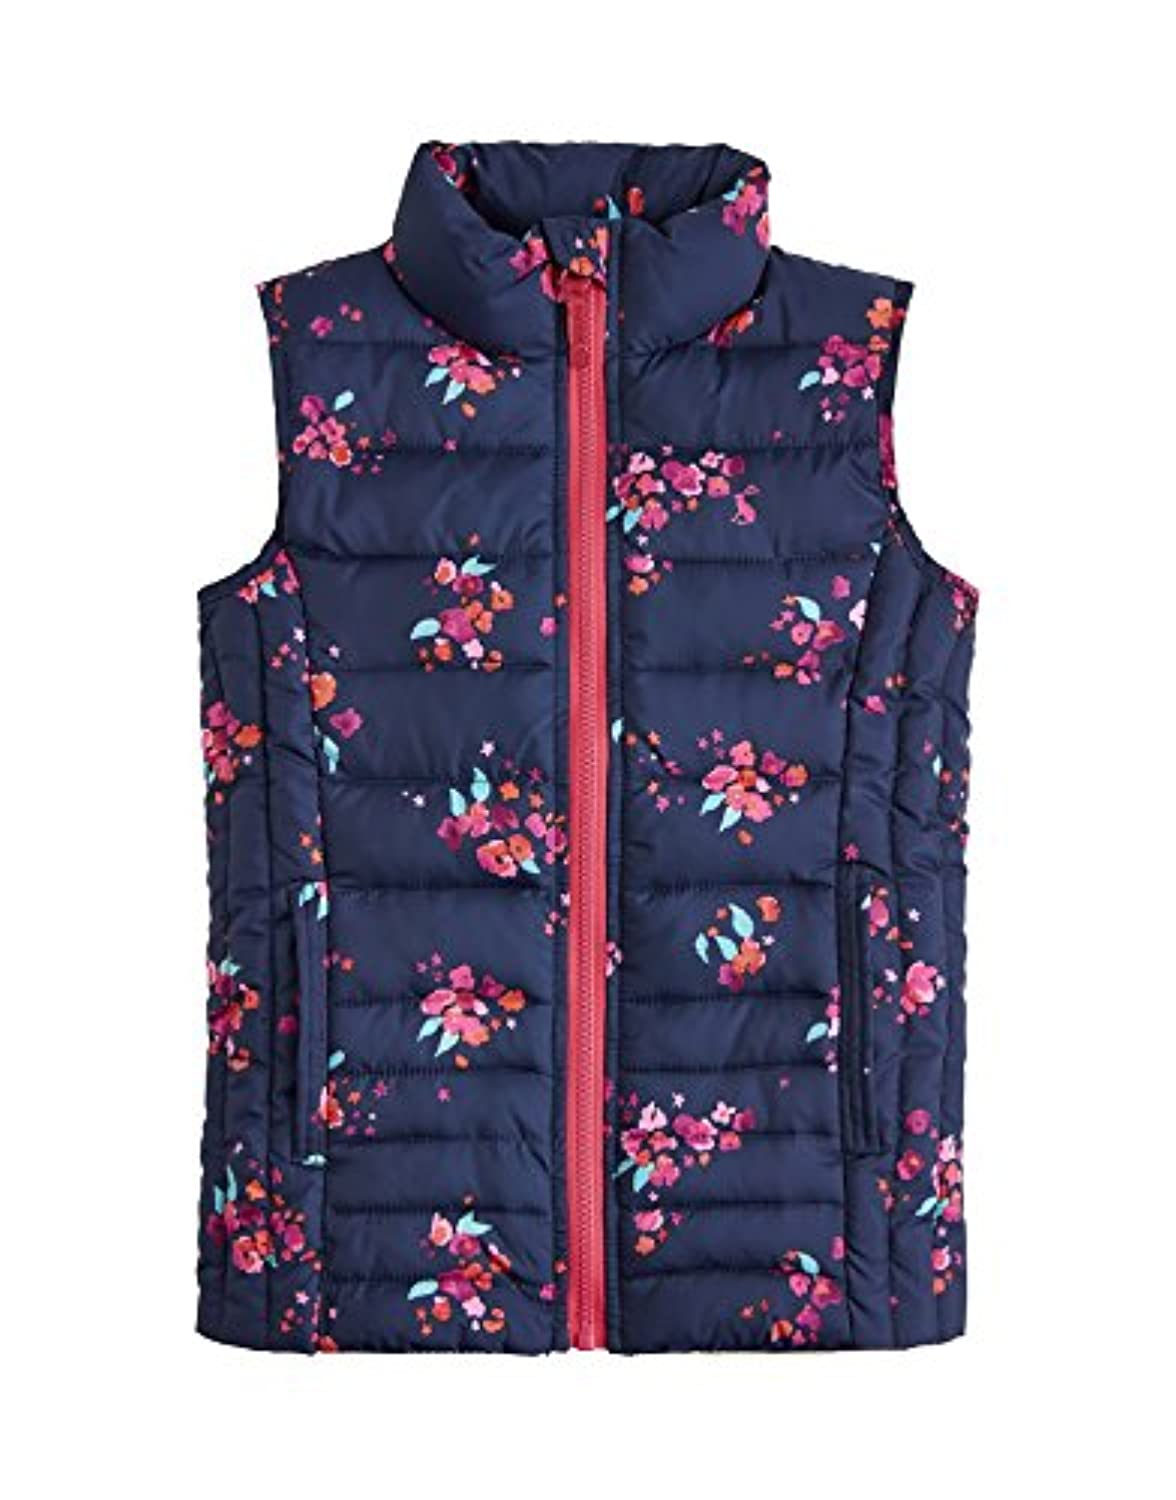 Joules OUTERWEAR ユニセックス?キッズ